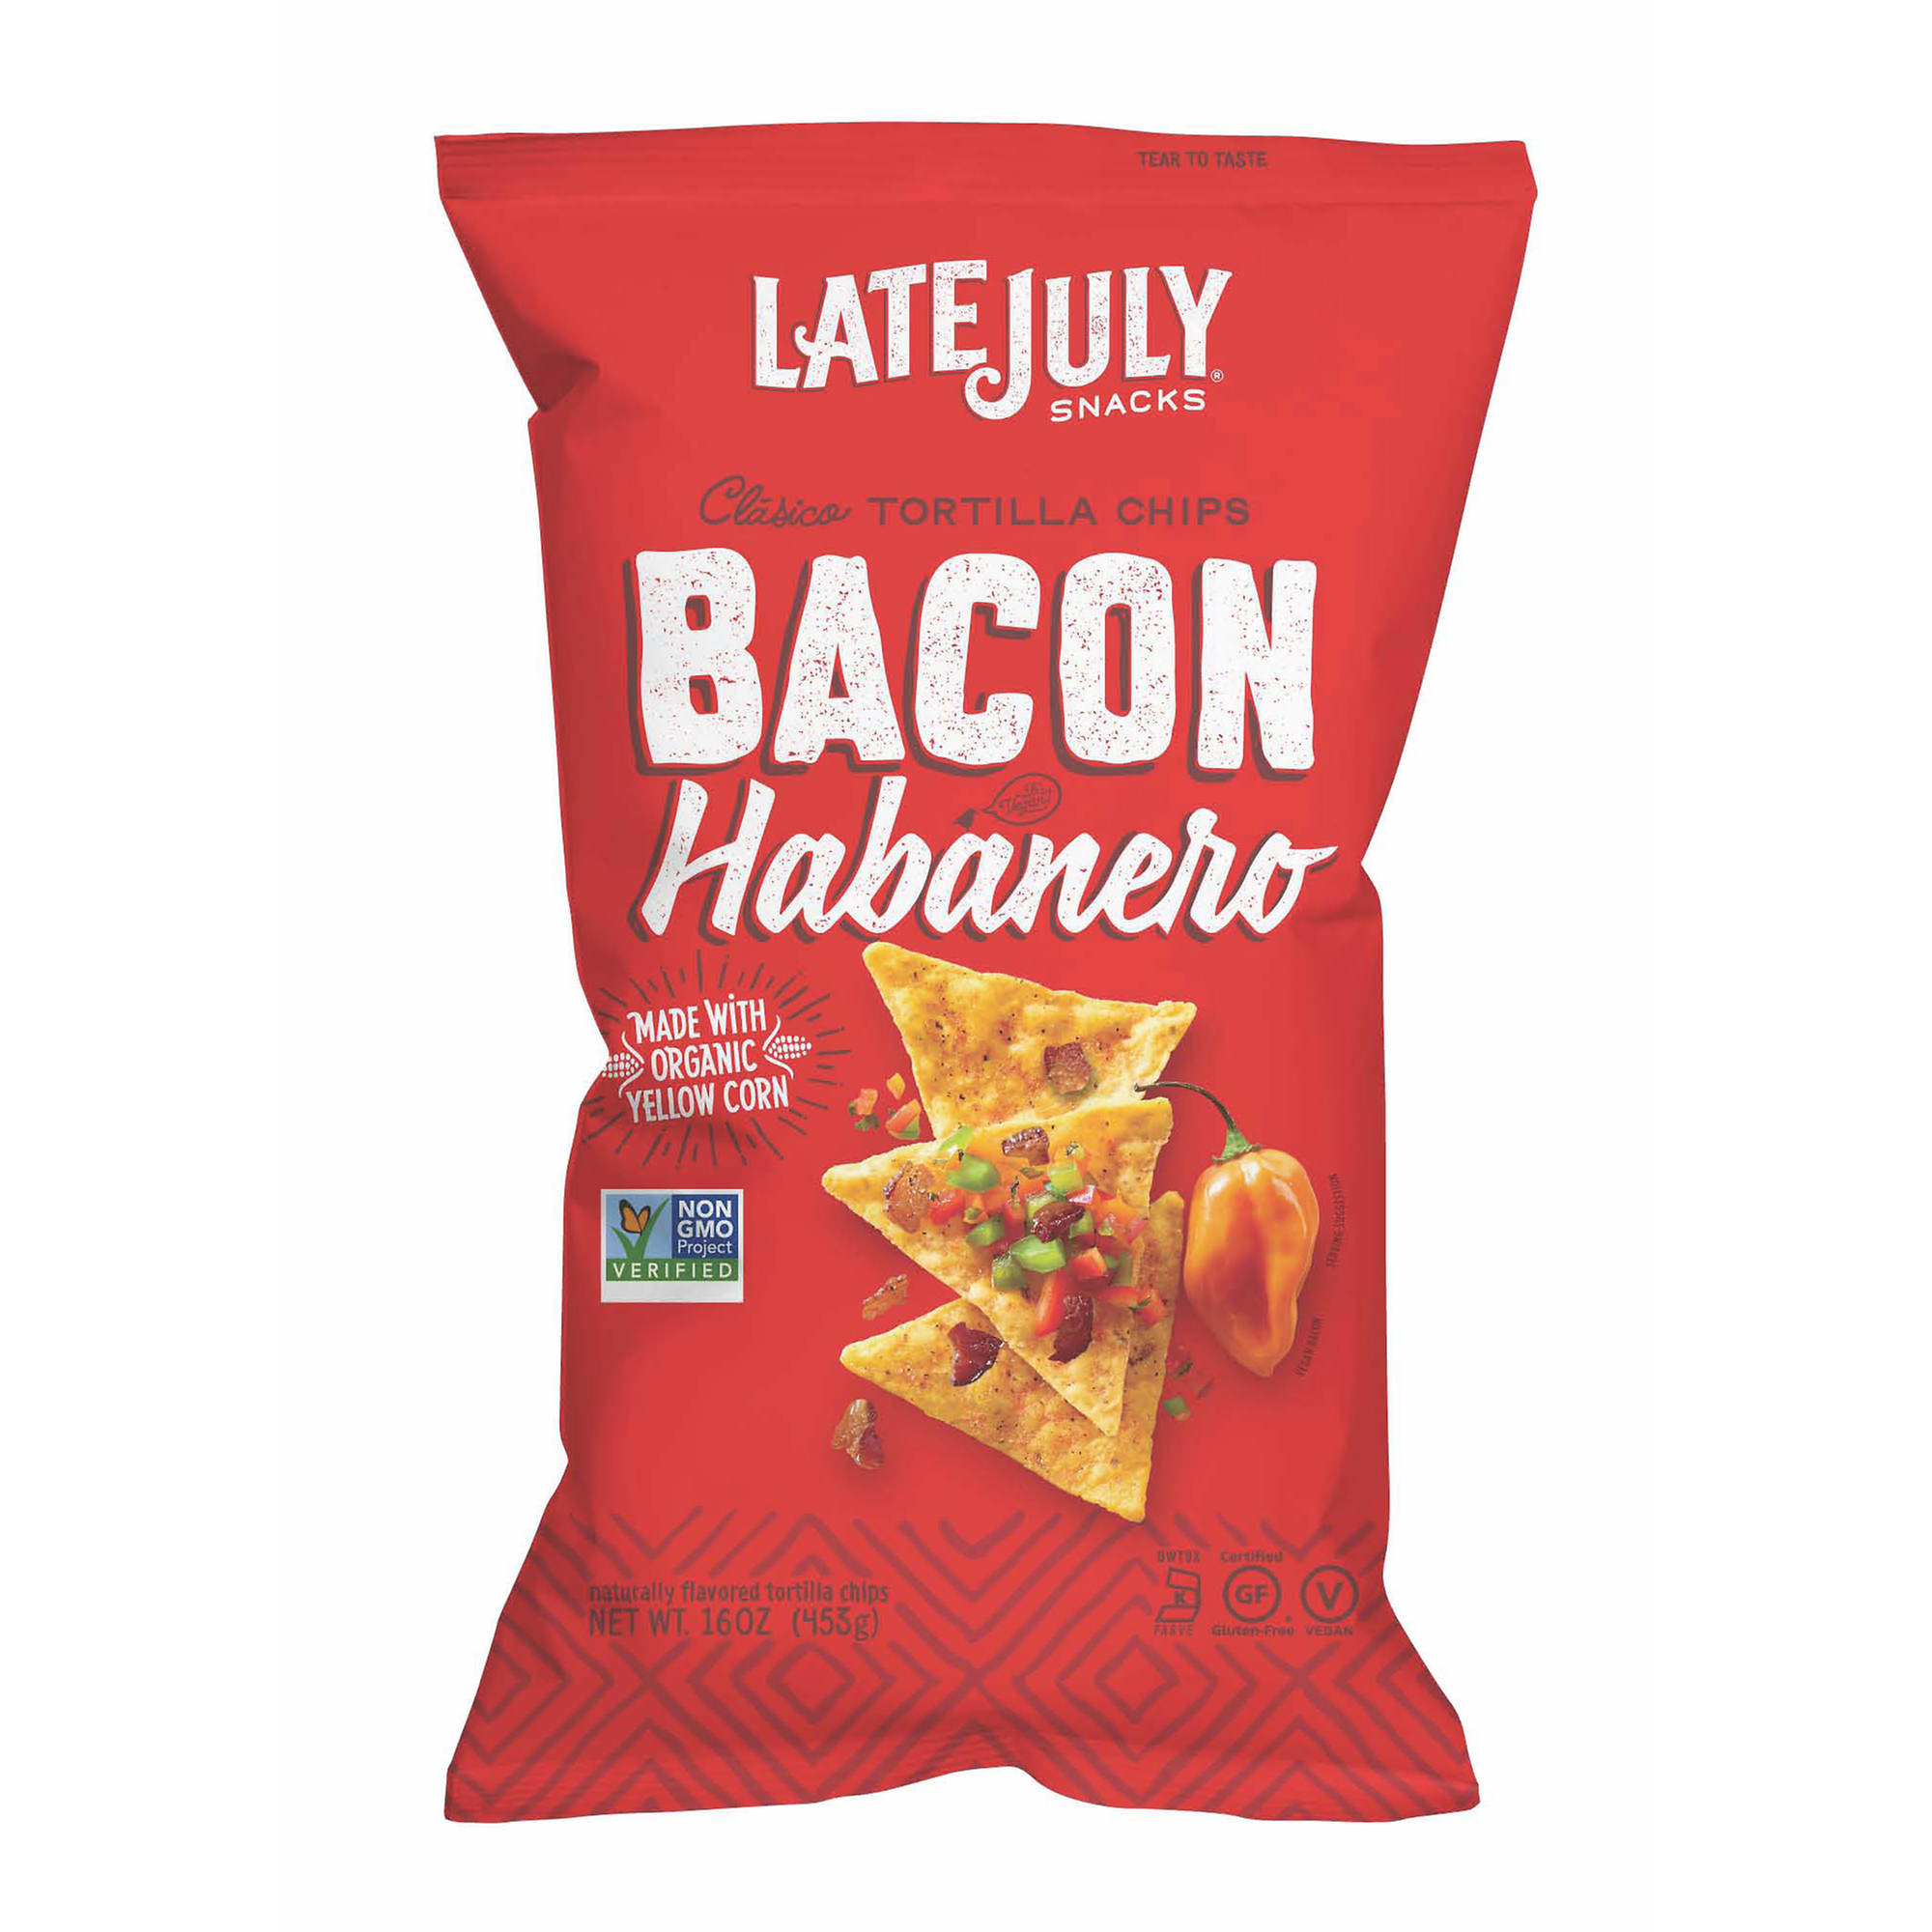 Christmas Colored Tortilla Chips With Late July Snacks Bacon Habanero 16 Oz BJs